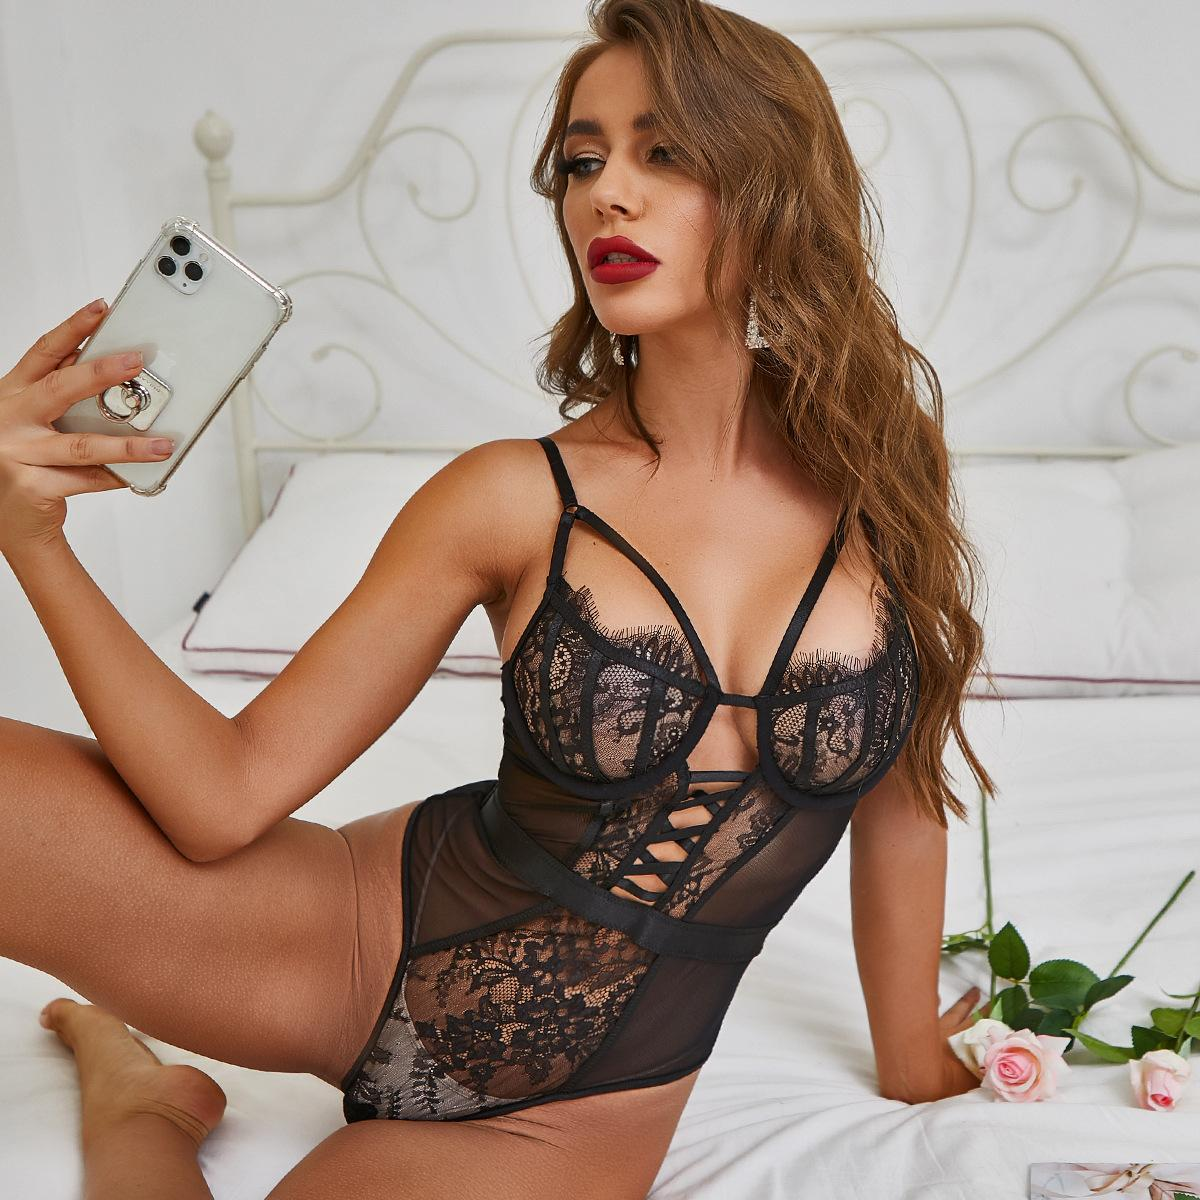 Intricate Craftsmanship Mesh Stitching Braided Belt Black And White Lace Eyelashes Hollow Sexy Lingerie Italian Sexy